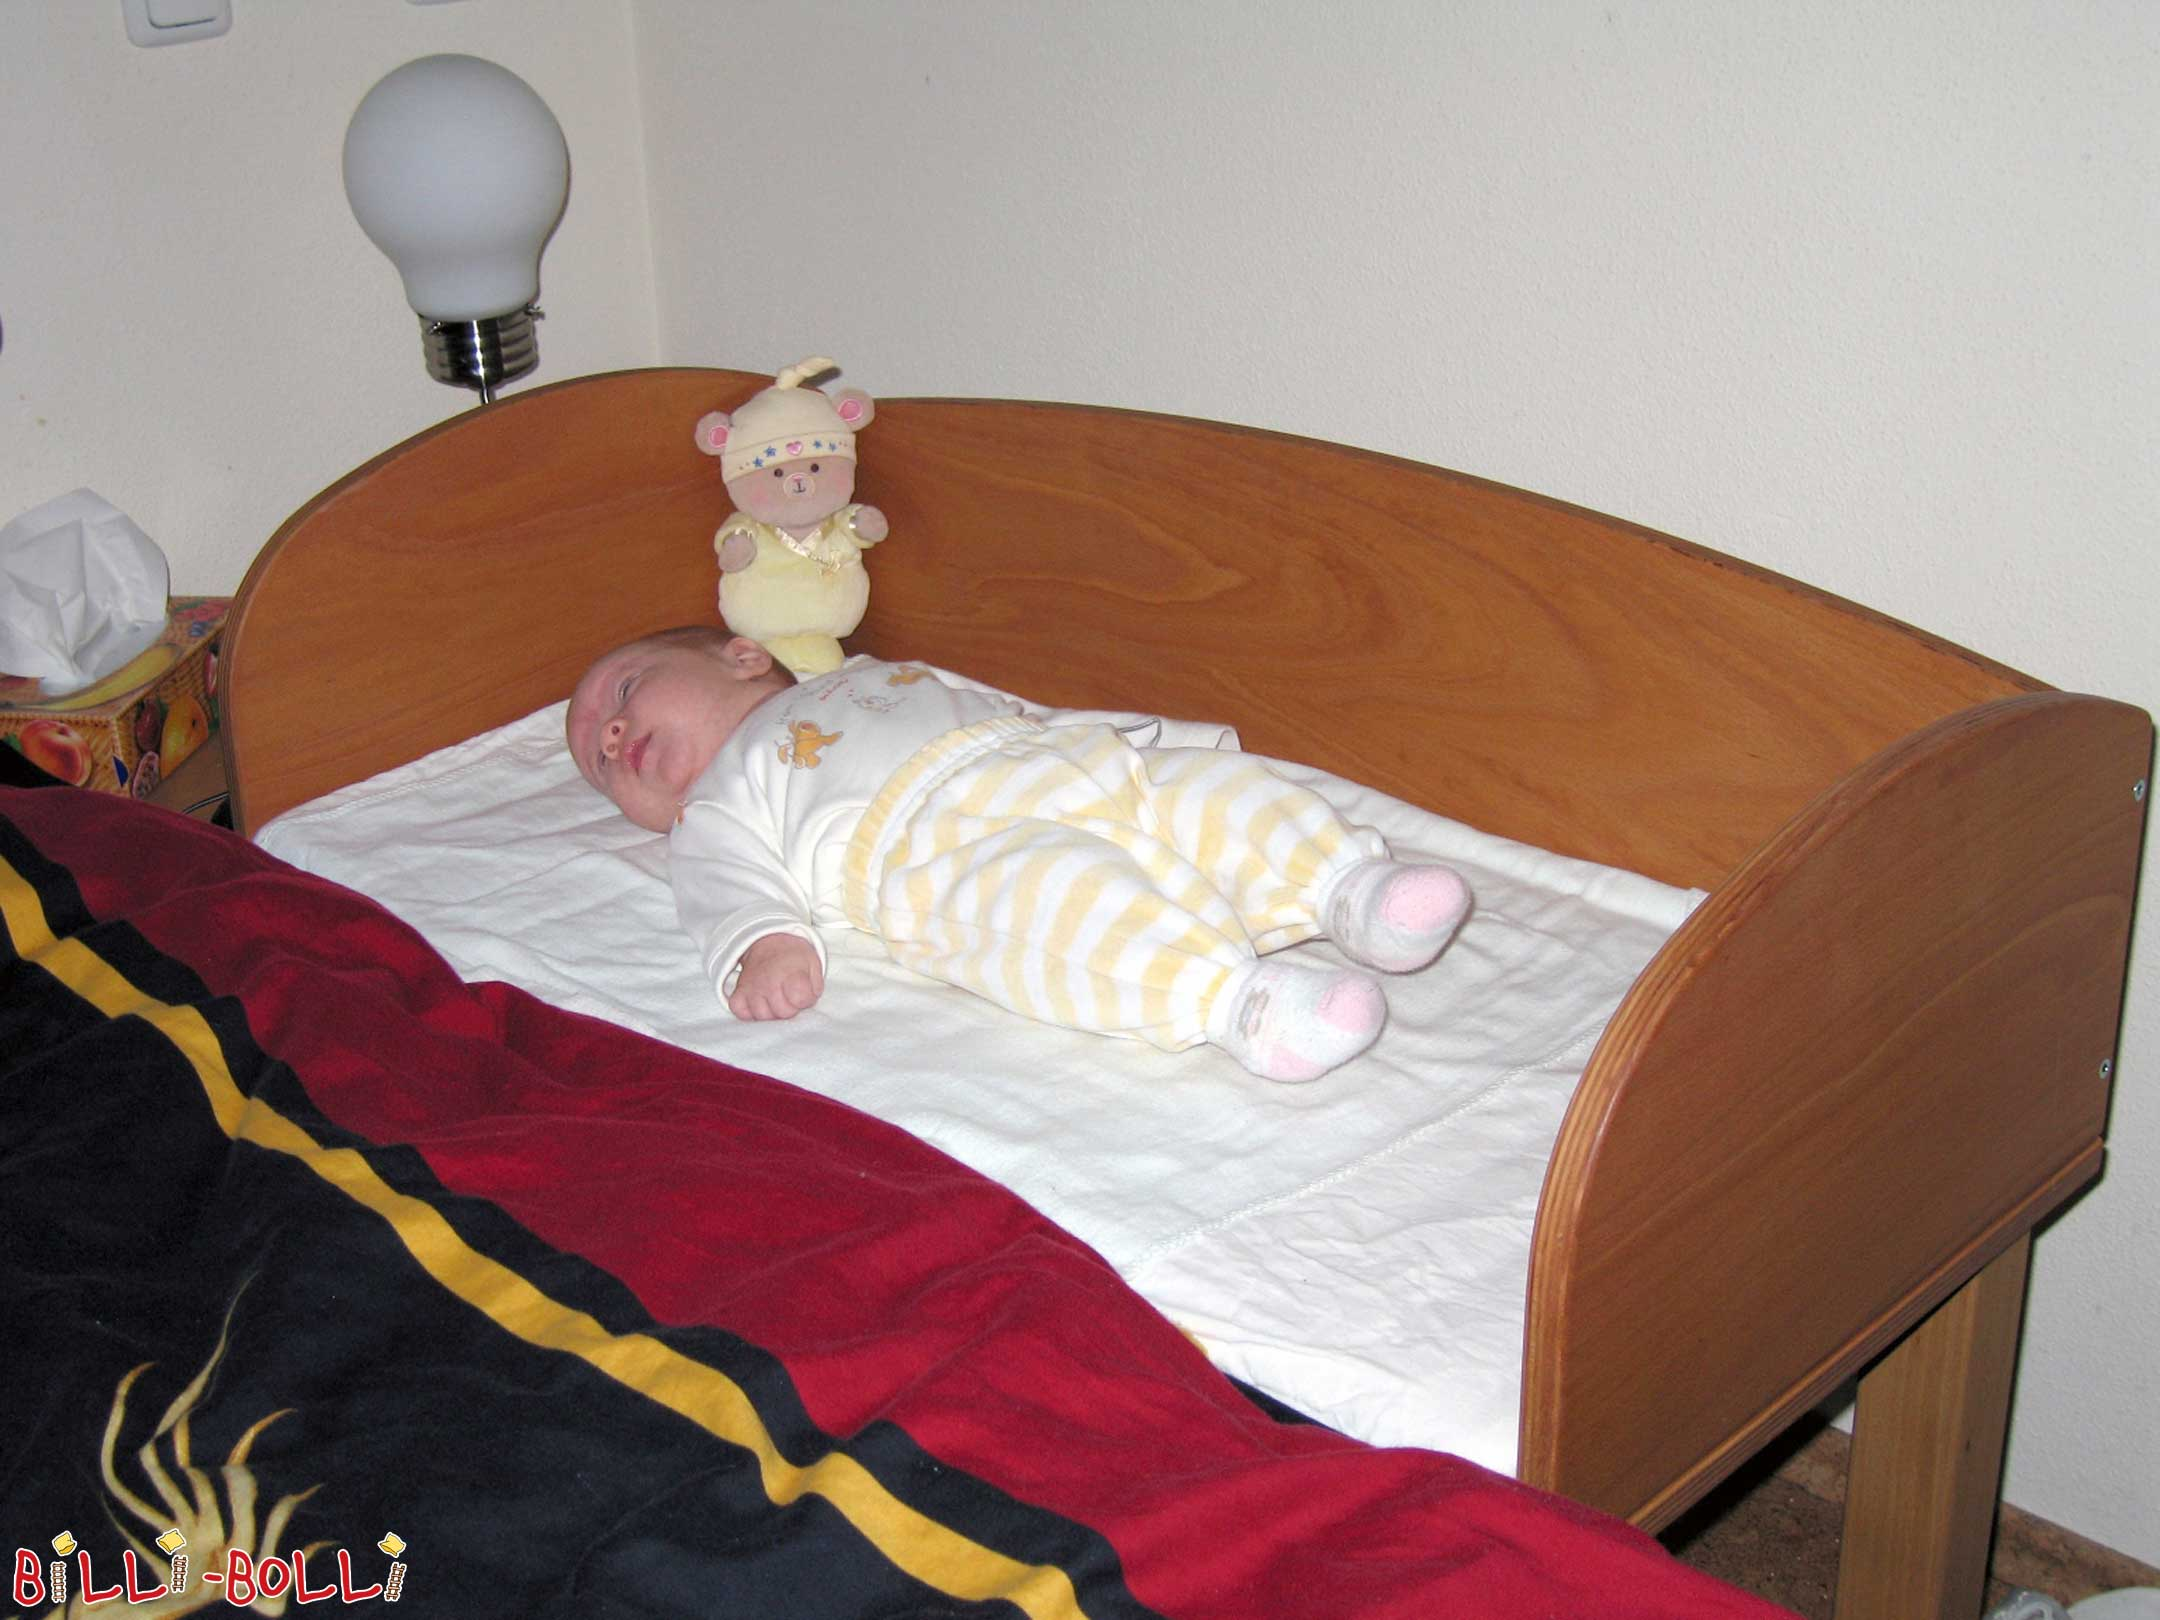 Bedside Crib (co-sleeper) (More Beds)